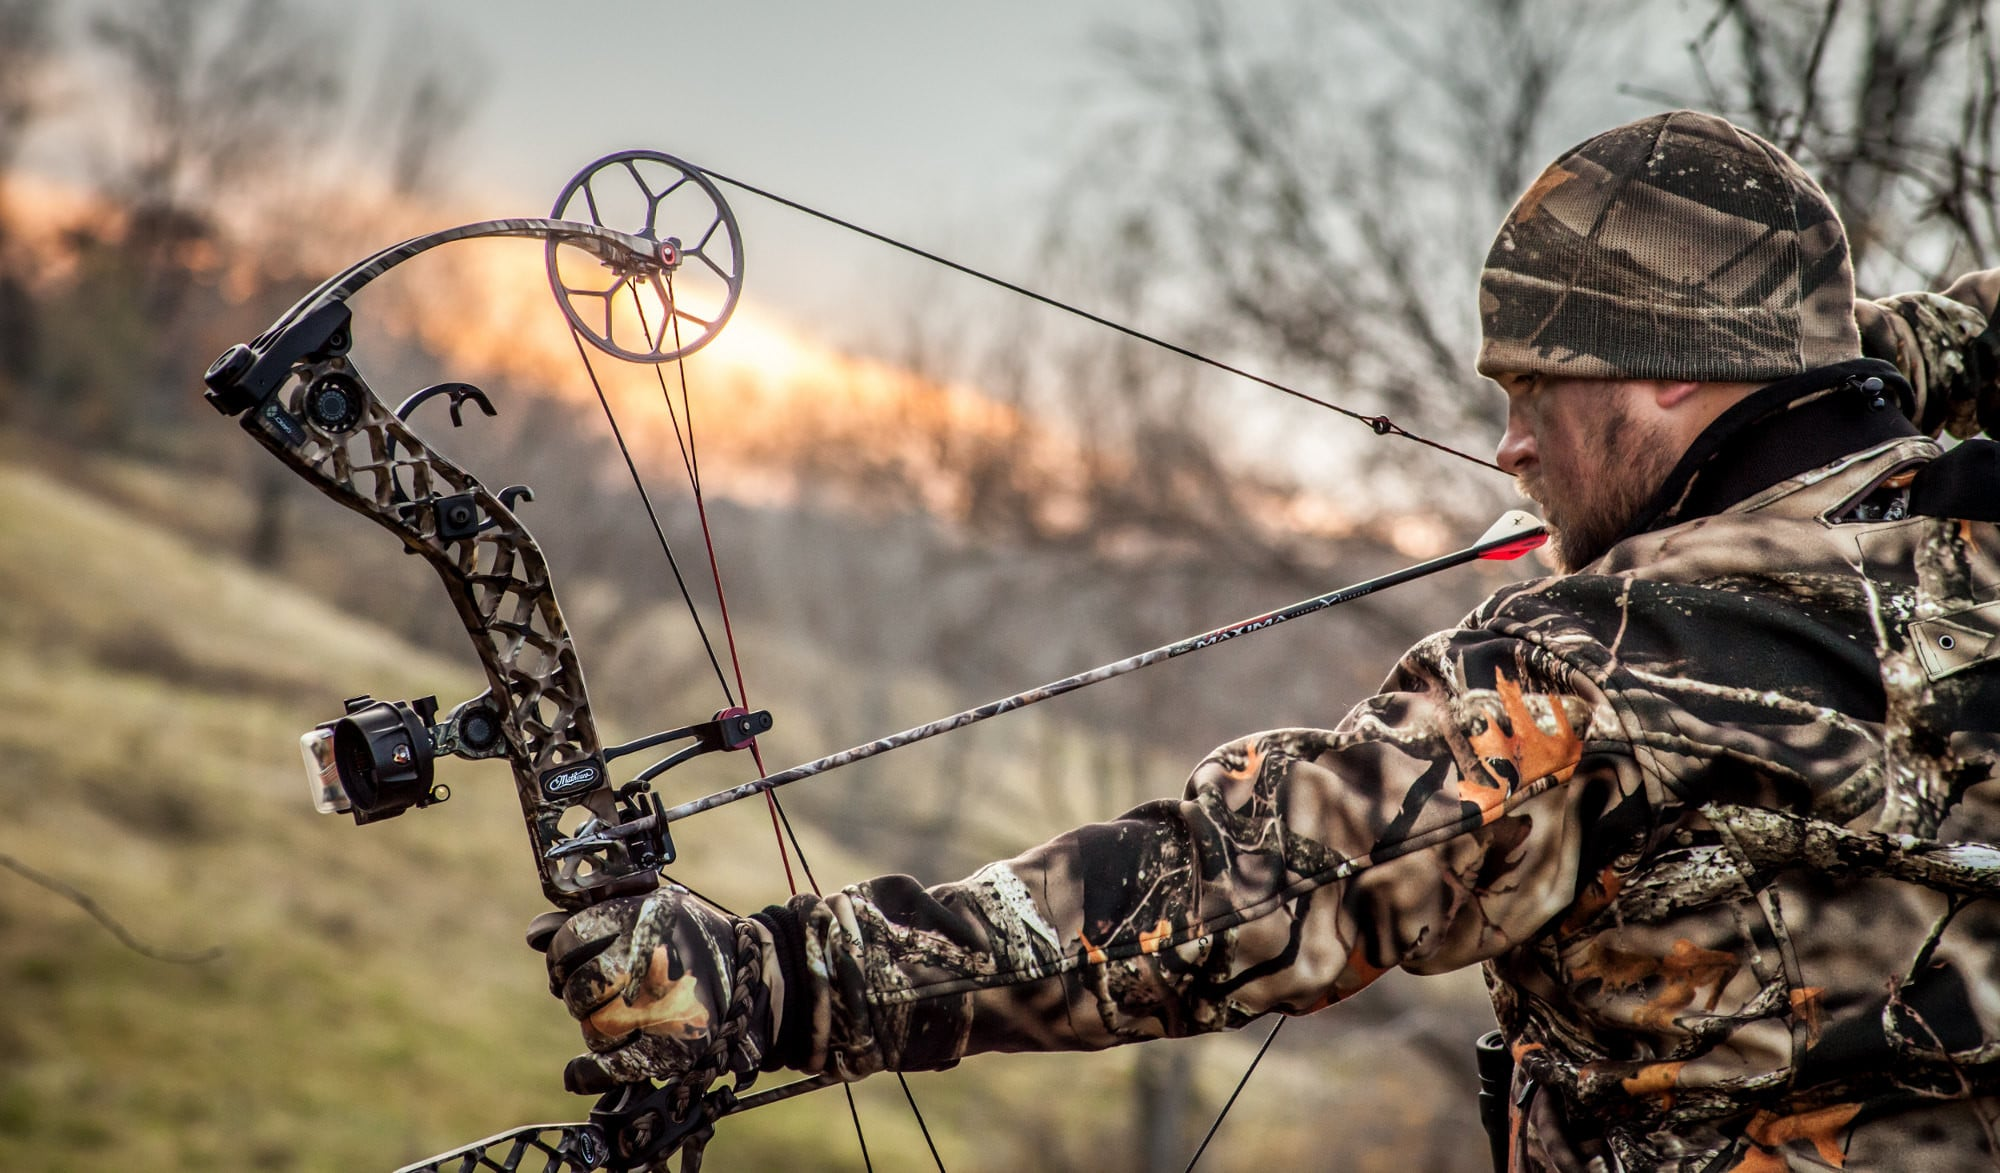 How to String a Compound Bow - Expert Guide